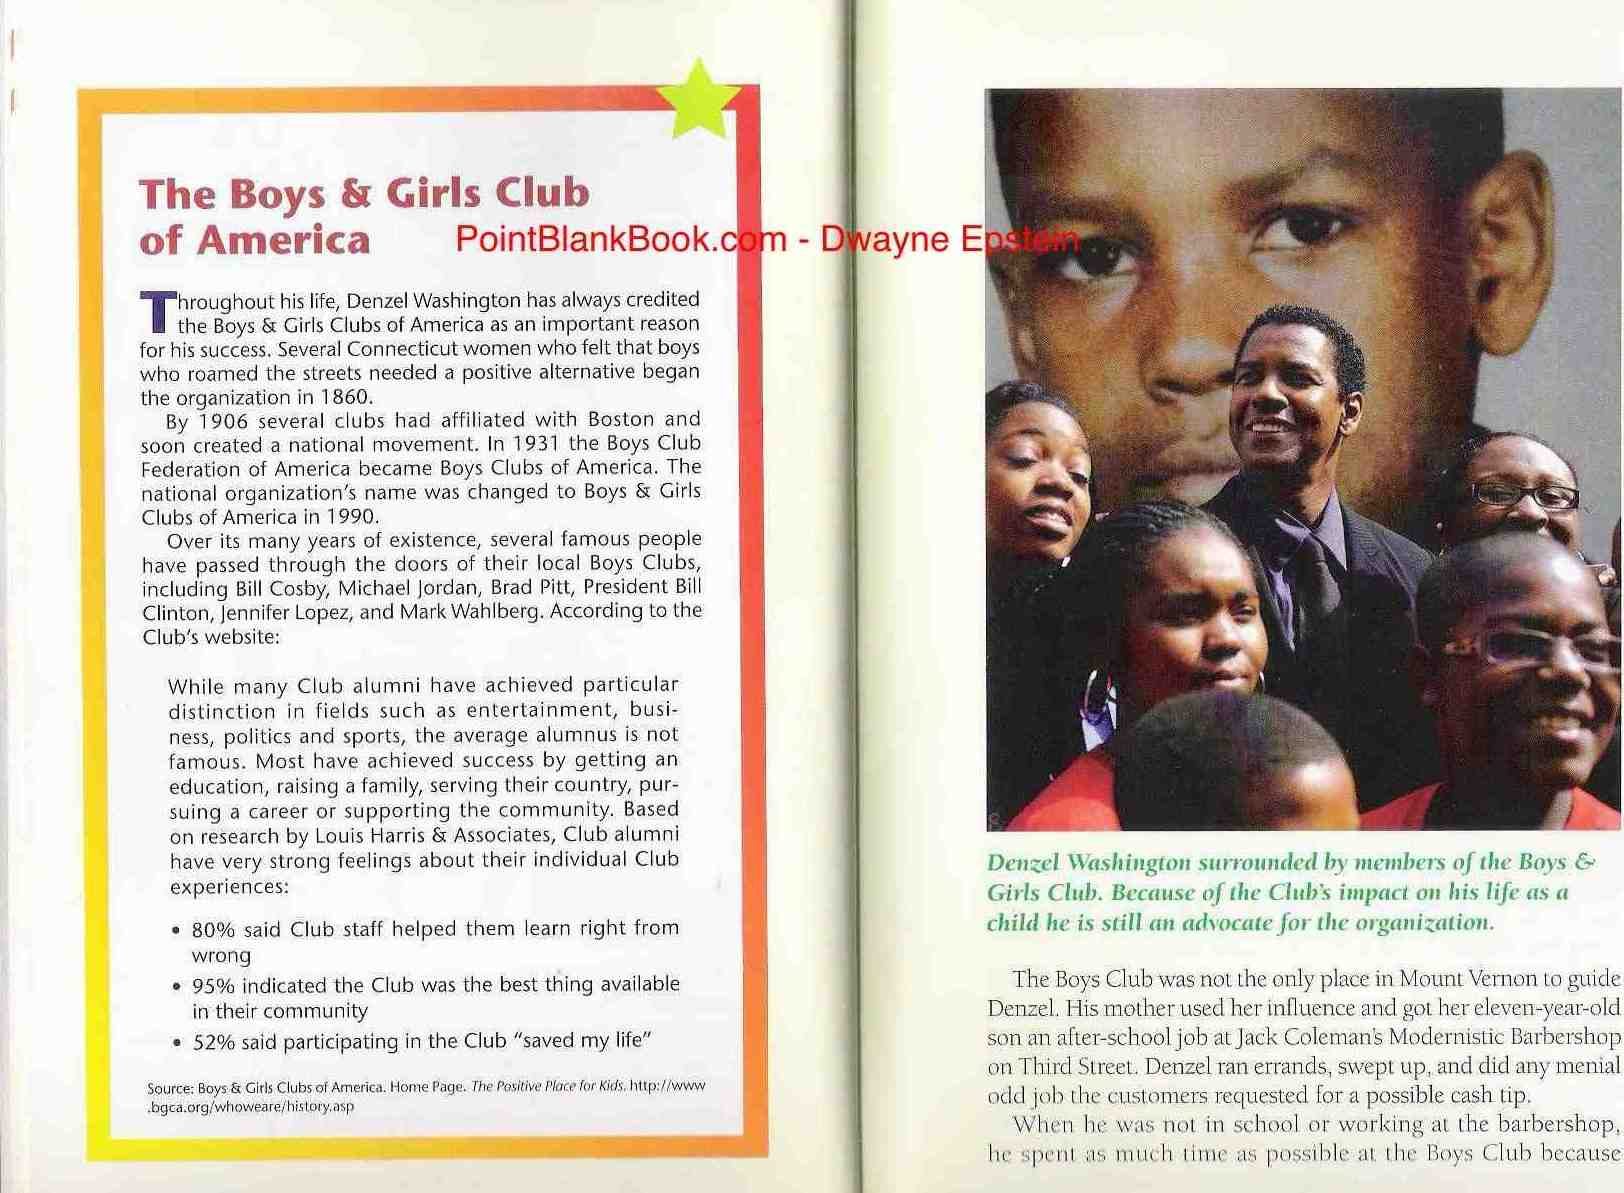 Two sidebars per chapter are a requirement for each title so it allowed me to delve into The Boys & Girls Club of America's interesting history. Opposite page shows Denzel in front of a photo of himself as a youngster as he himself is surrounded by current Club members.